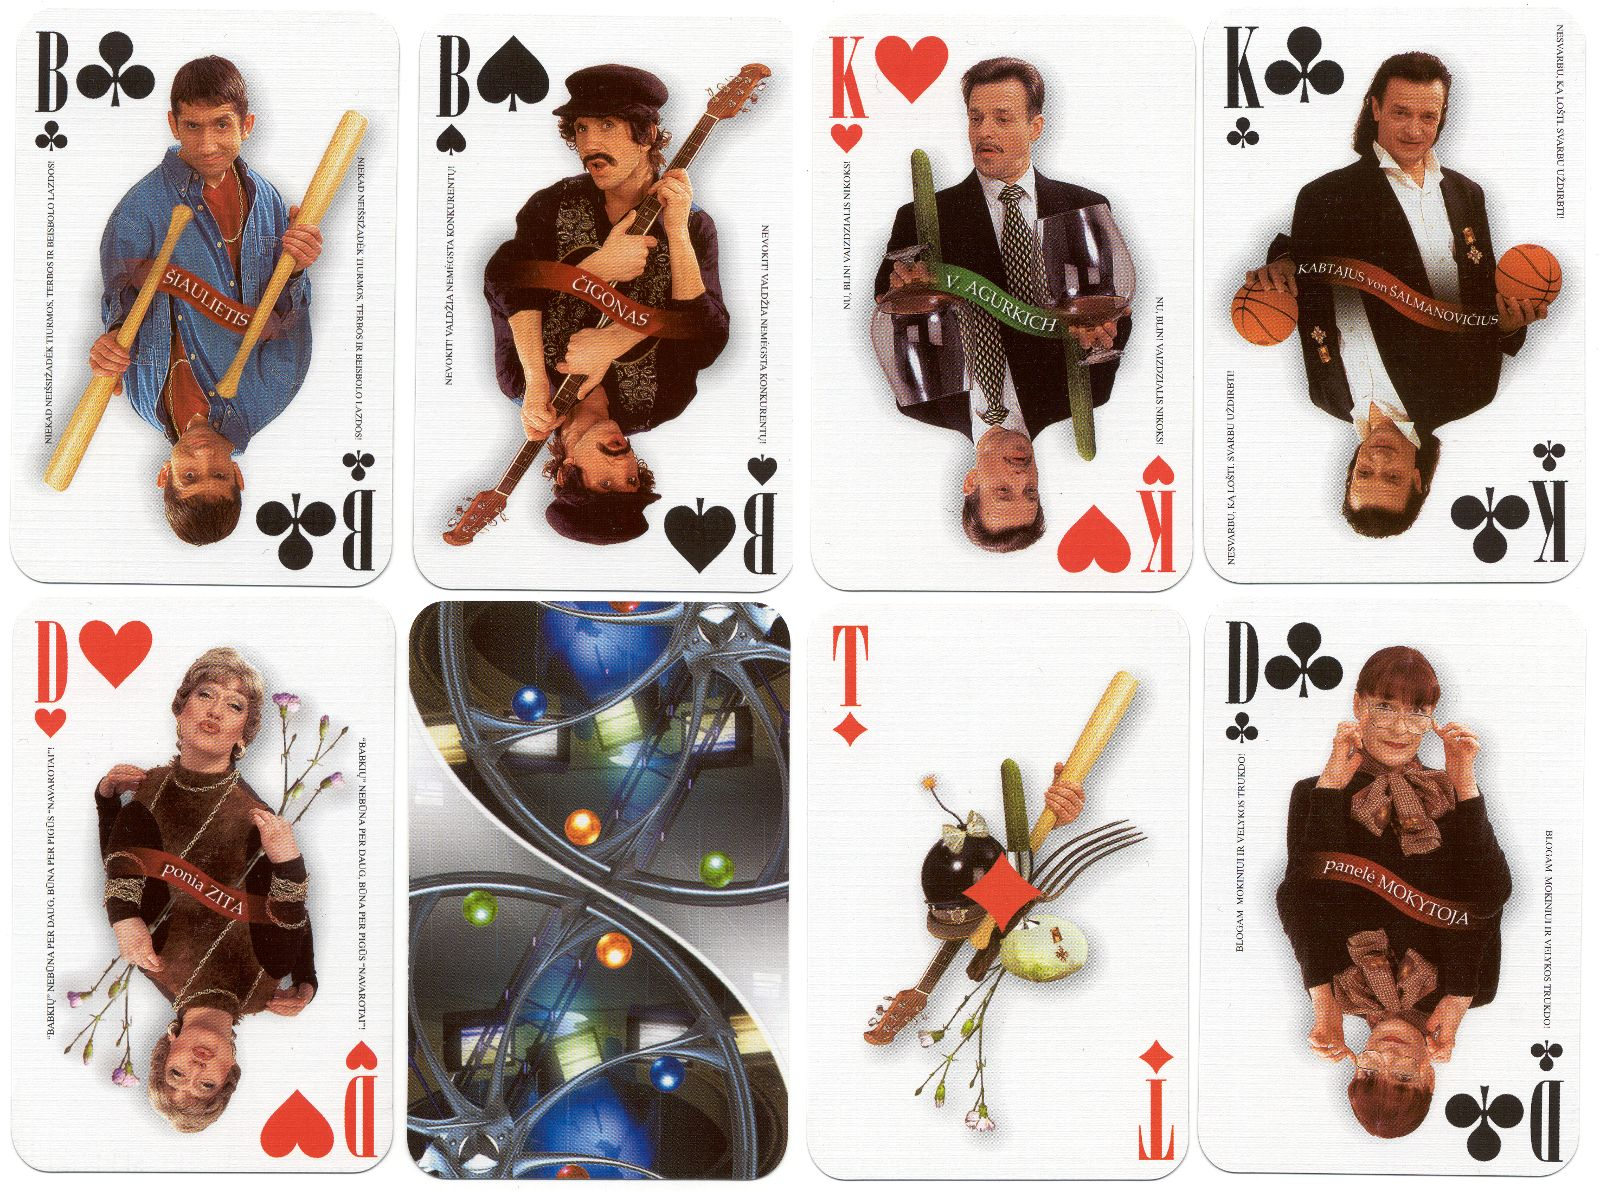 Dviracio Kortos, 2001, Lithuanian Satirical Playing Cards